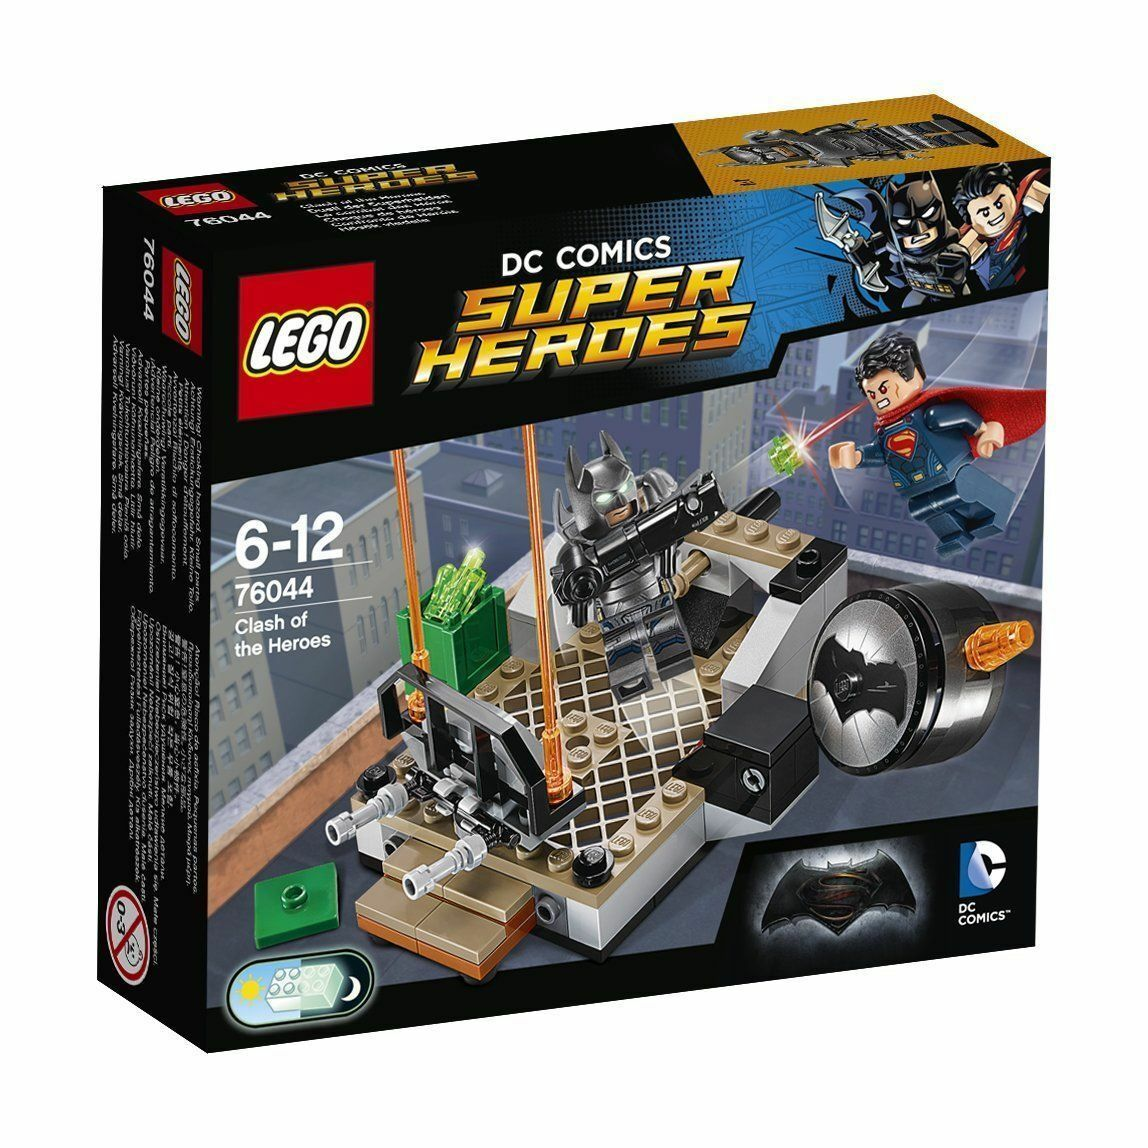 LEGO 76044 Super Heroes Clash of the Heroes  Brand New  DC Comics